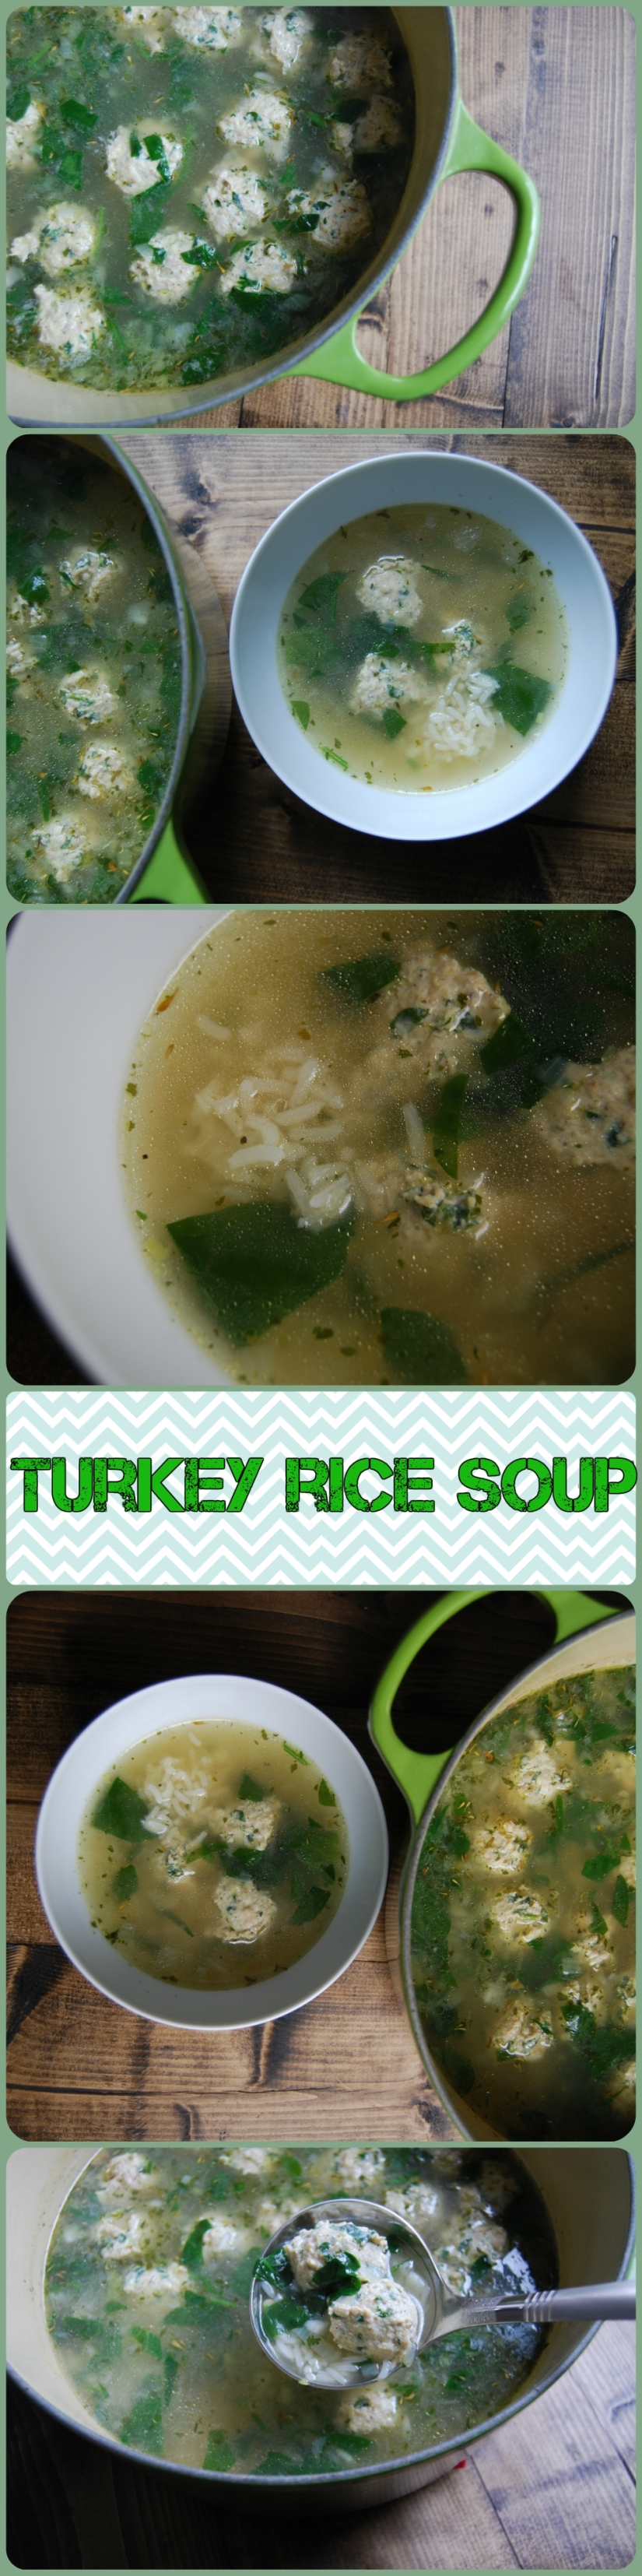 Turkey rice soup PINTEREST